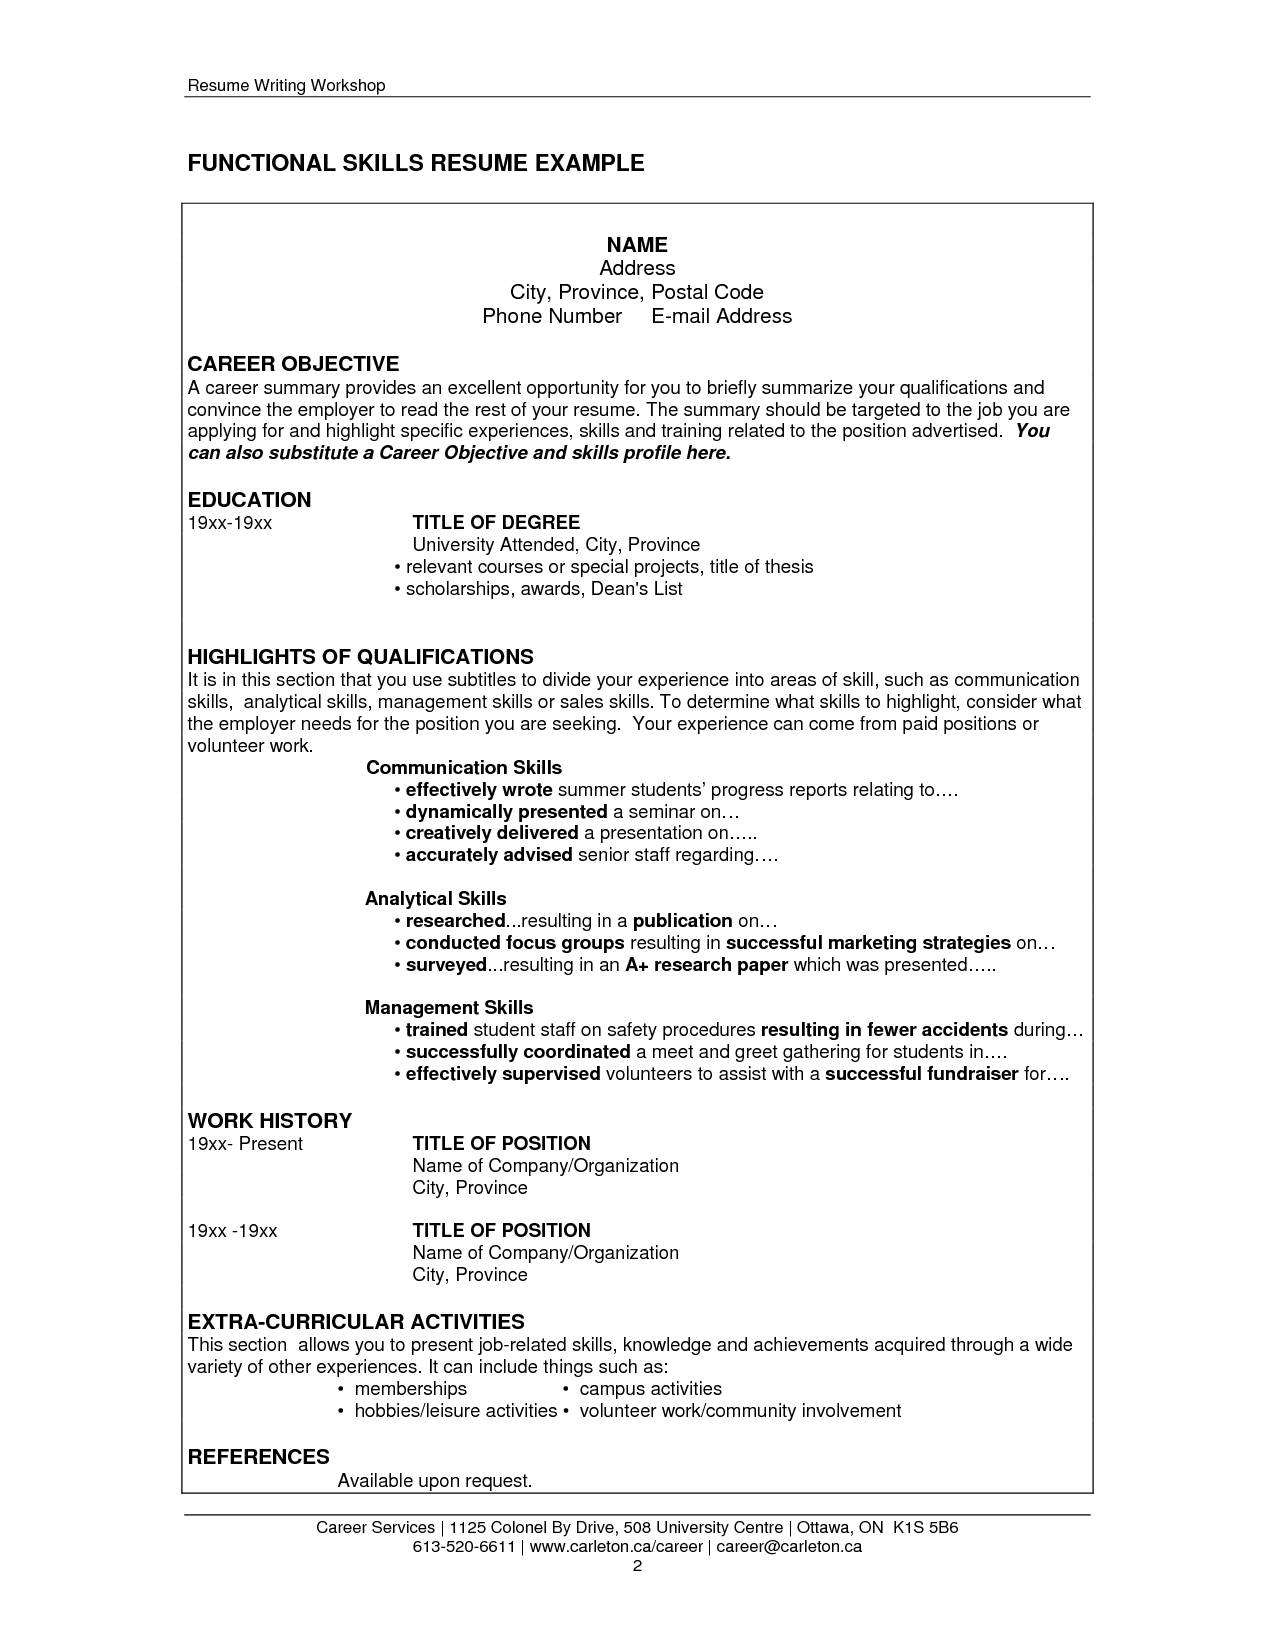 Knowledge Skills And Abilities Resume Example.Skills In Resume Examples Yupar Magdalene Project Org